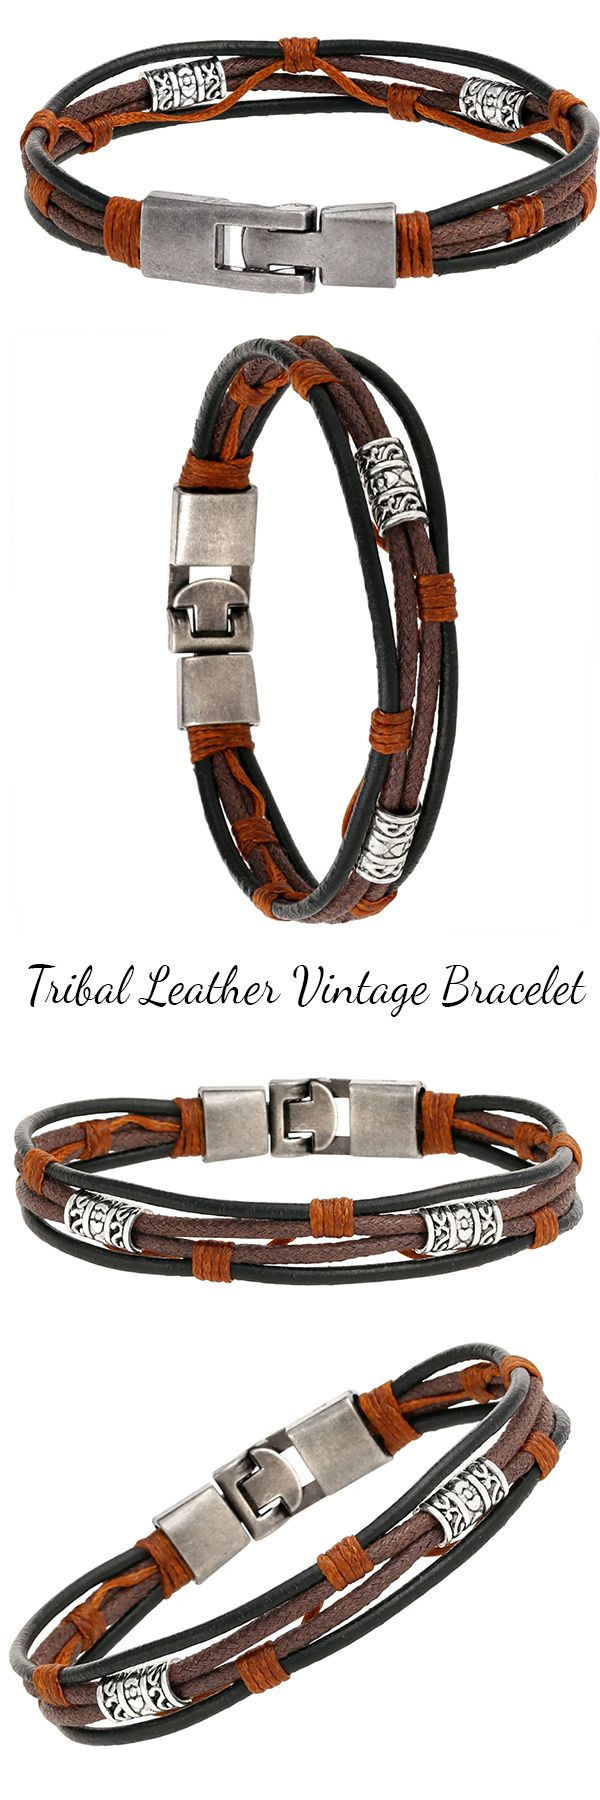 Alloy Vintage Charms with Brown black and orange leather rope leather braided band. Featuring high quality leather and vintage charms, this tribal bracelet is perfect for the stylish man!